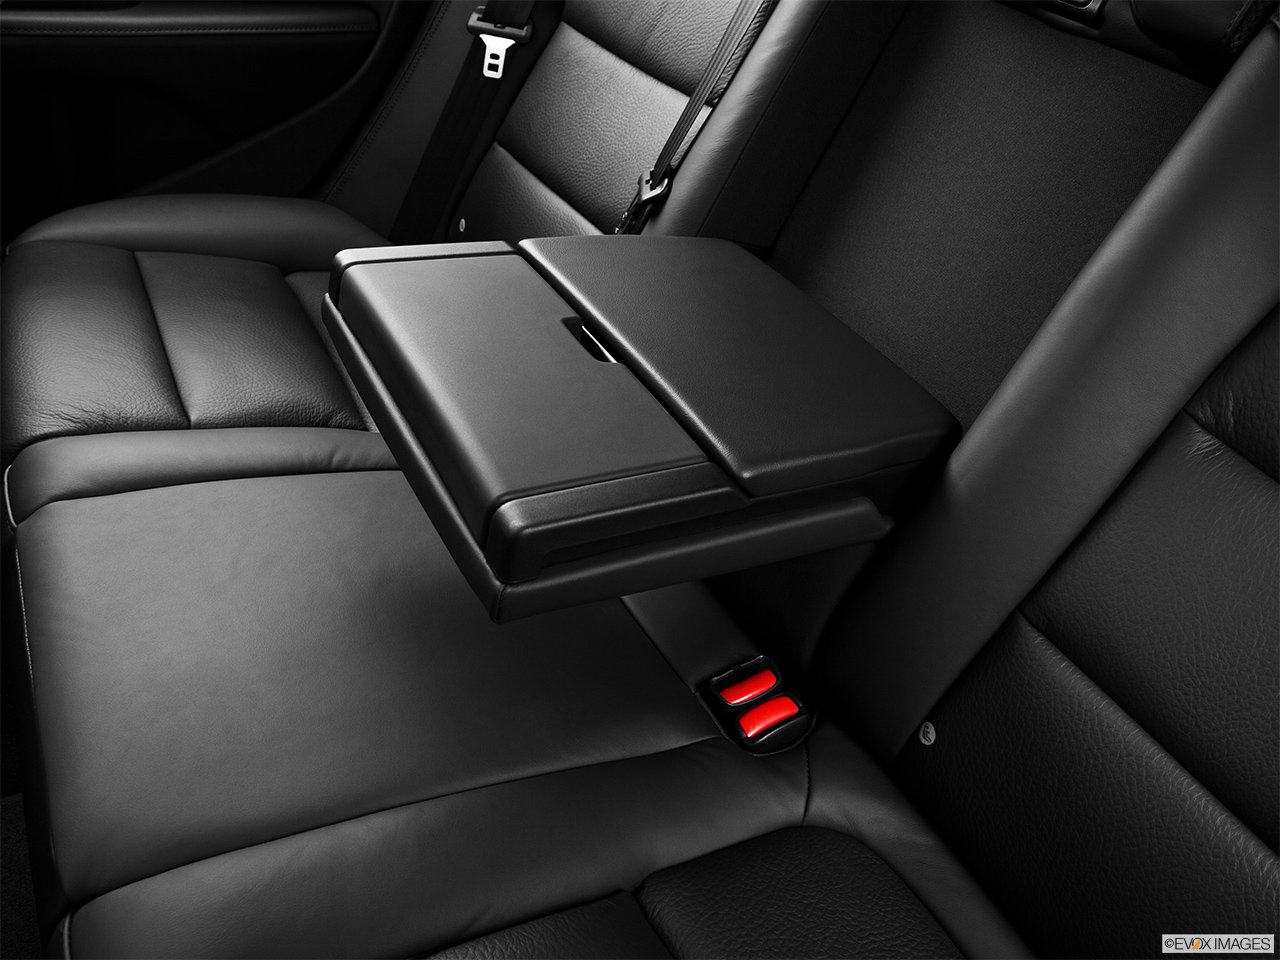 2013 Volvo XC70 T6 AWD Platinum Rear center console with closed lid from driver's side looking down.